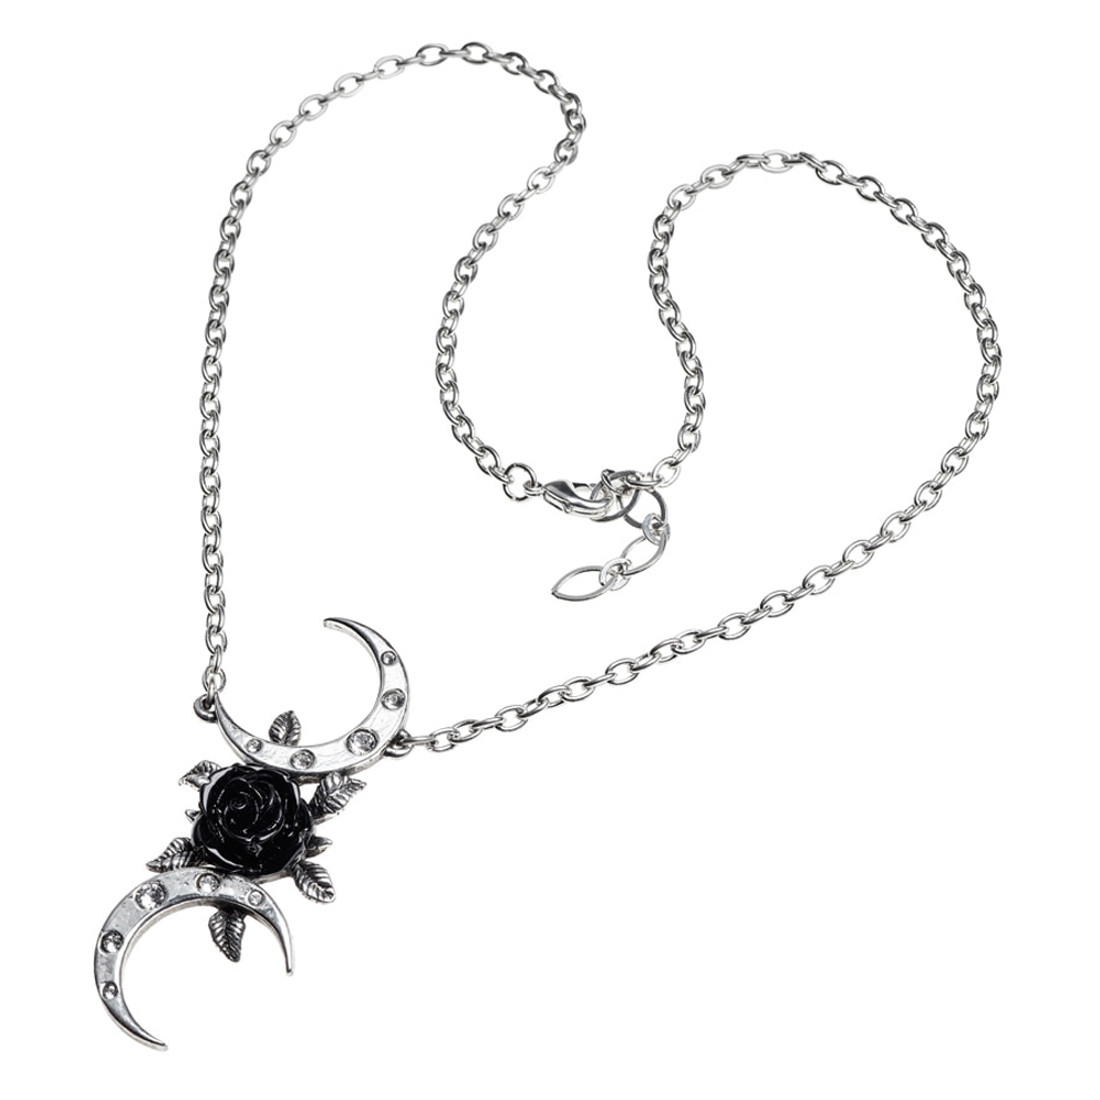 P870 - The Black Goddess Necklace full view